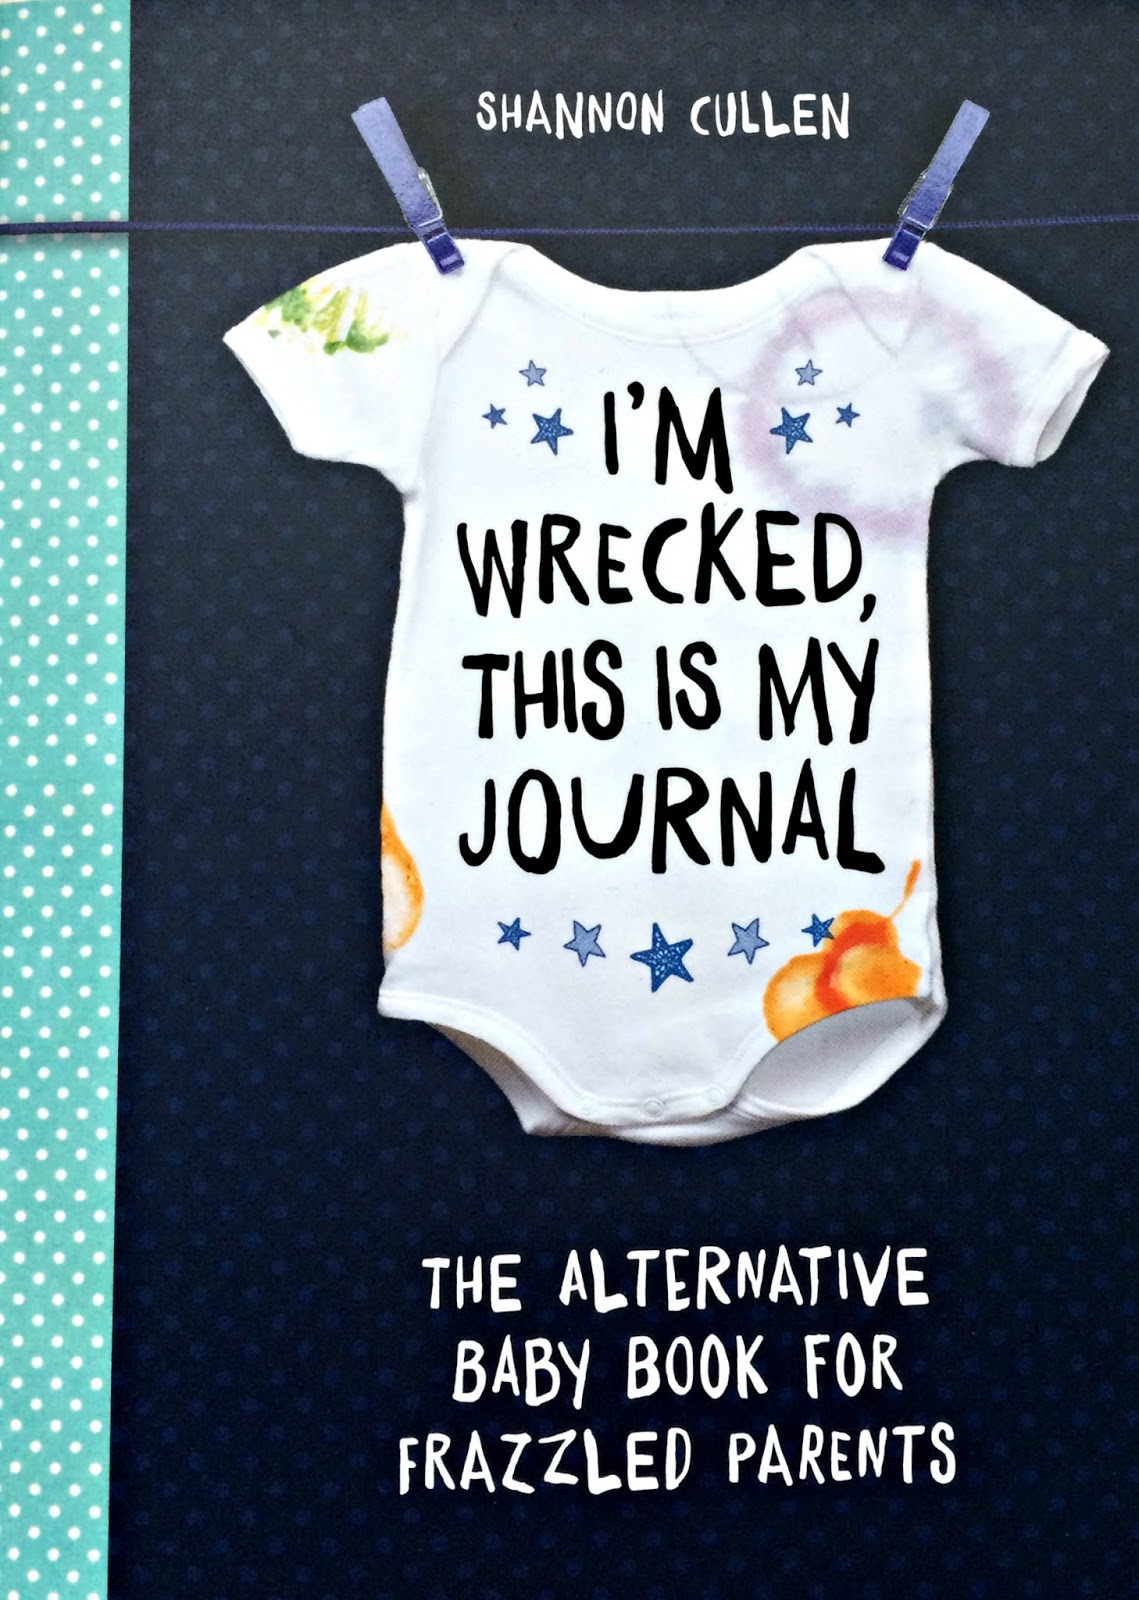 I'm Wrecked, This Is My Journal by Shannon Cullen book front cover